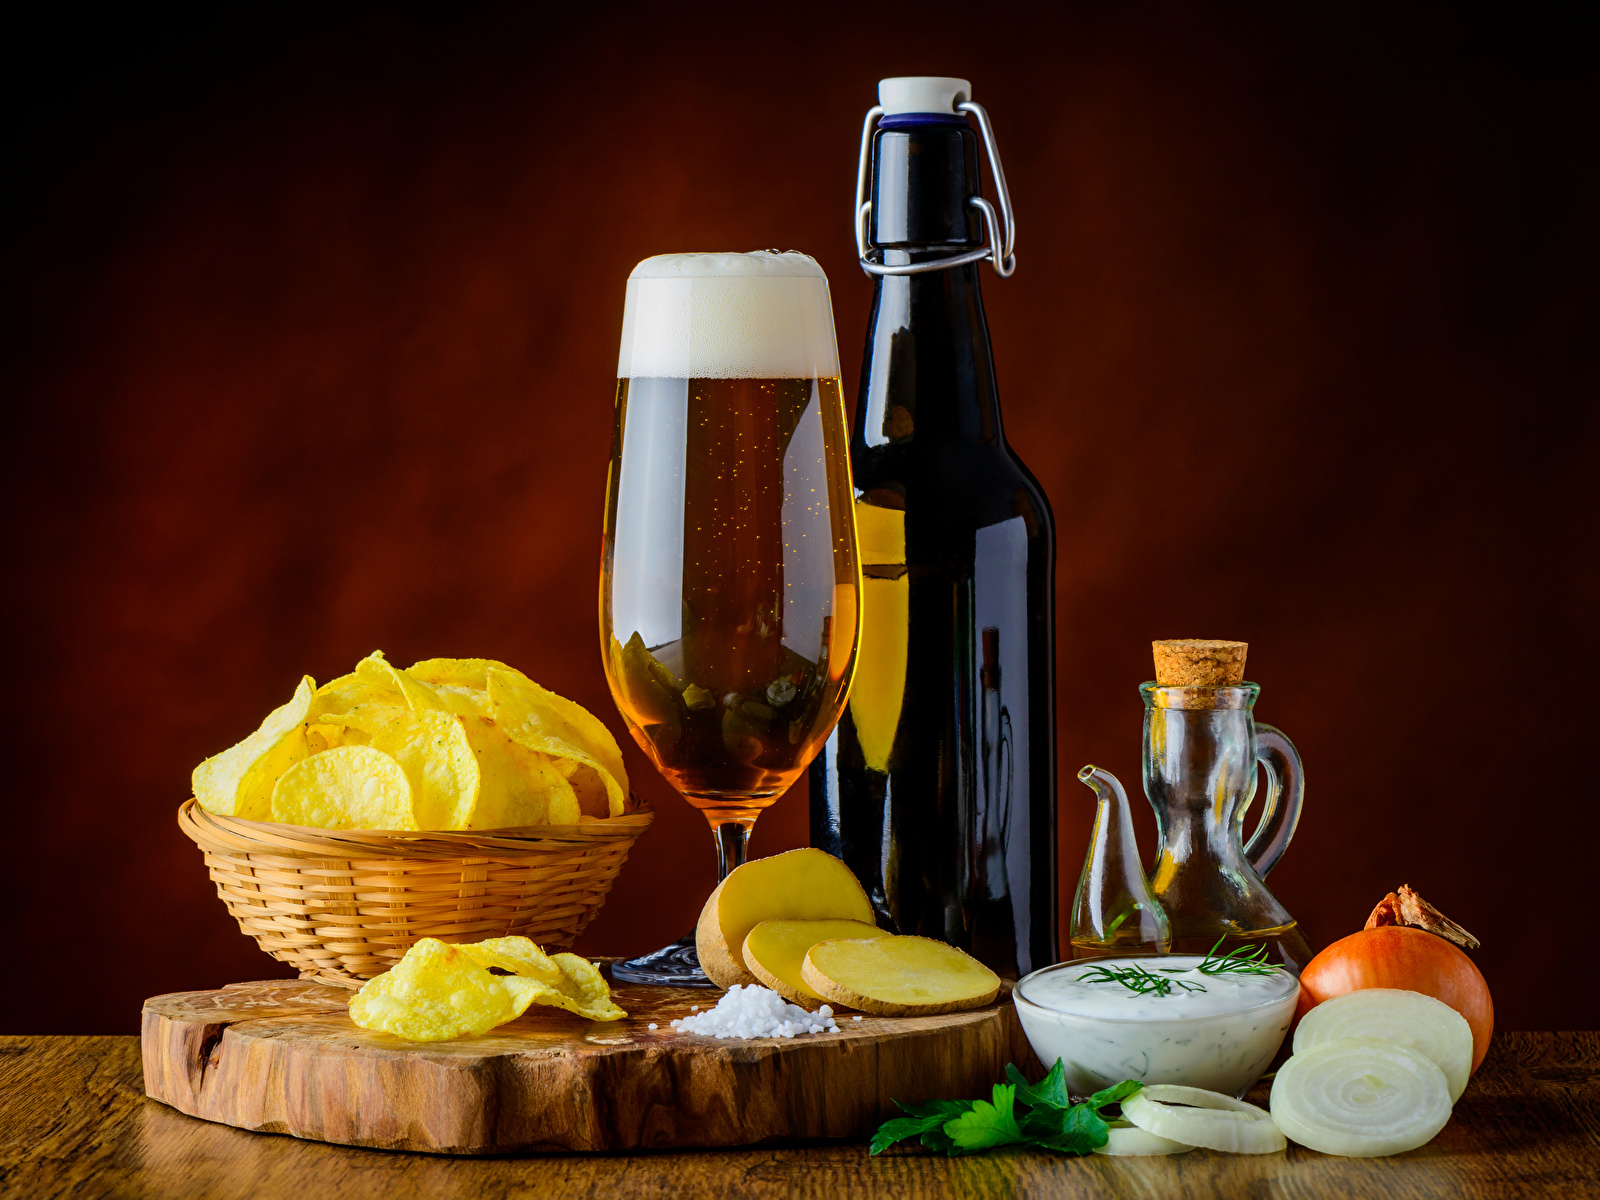 Images Beer Onion crisps Food bottles Stemware 1600x1200 Chips Bottle